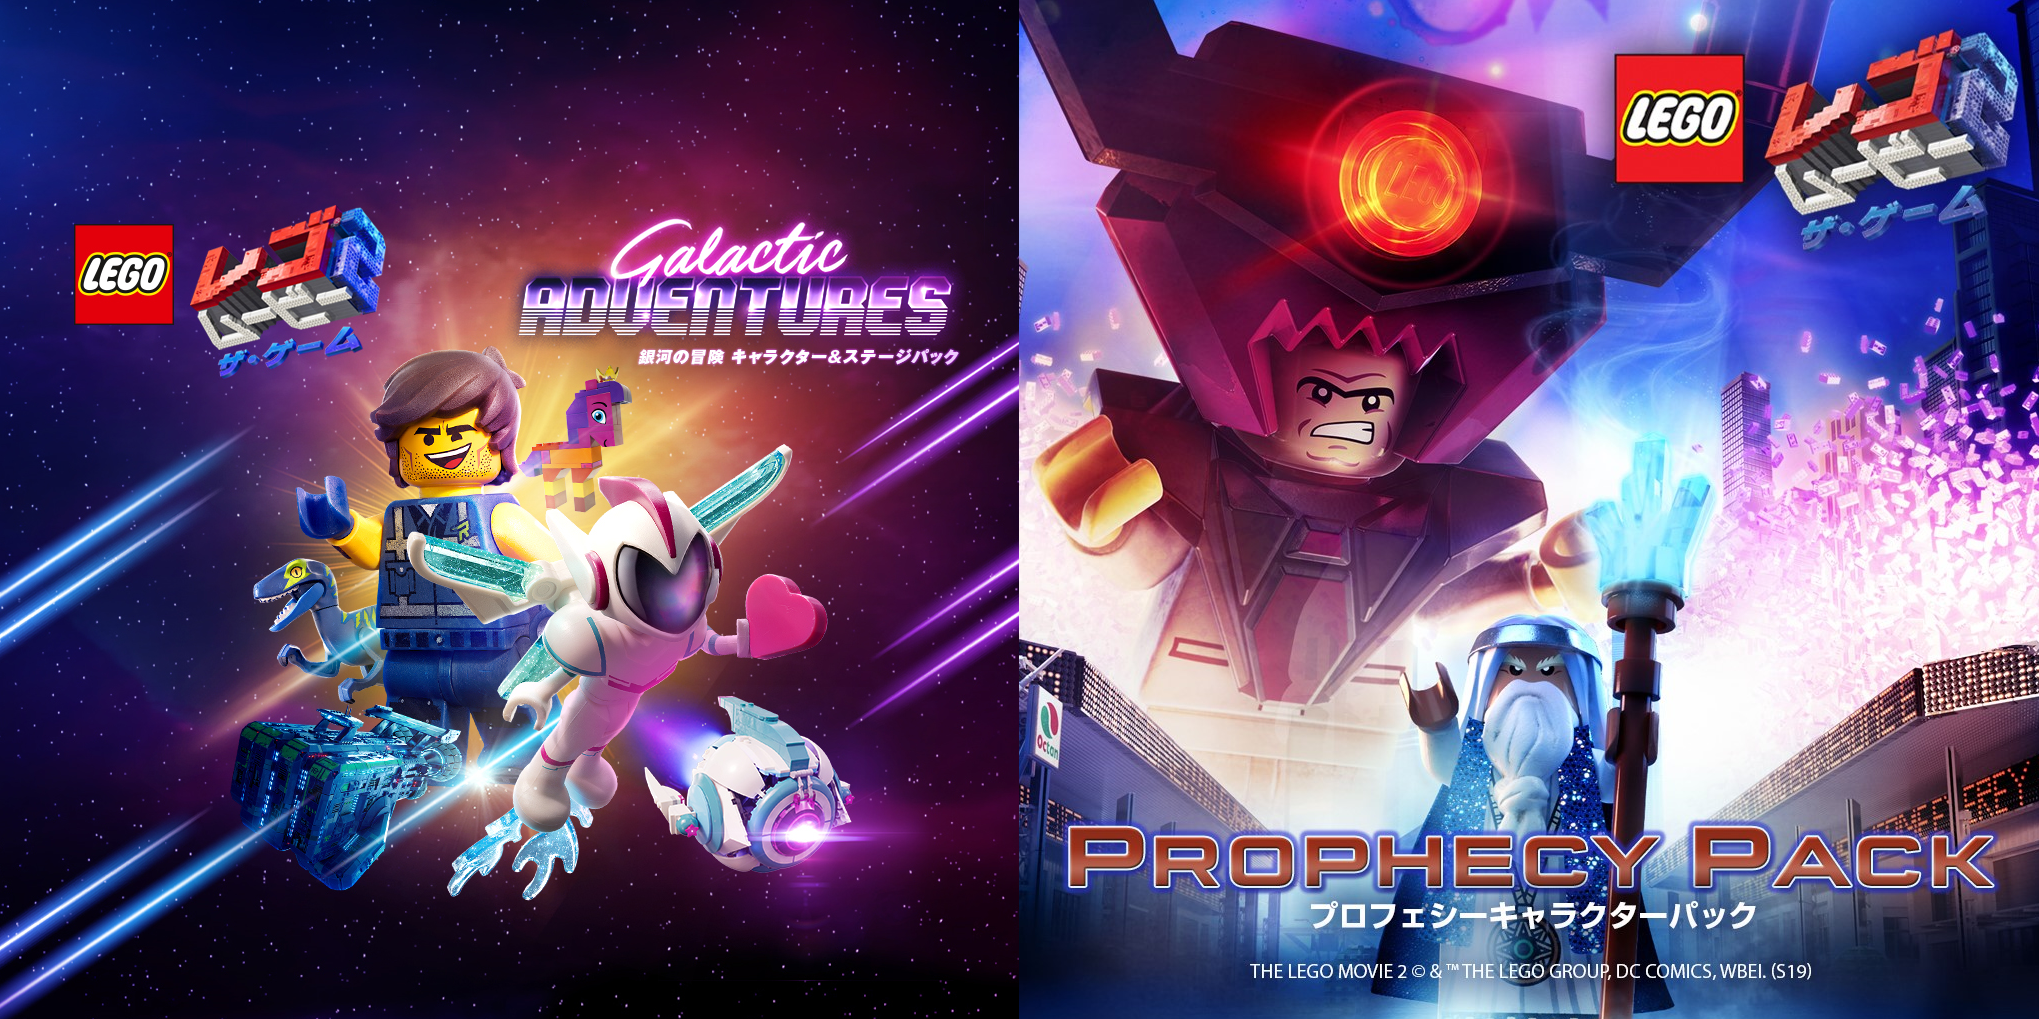 Two Dlc Packs For The Lego Movie 2 Videogame Now Available In Japan Gonintendo